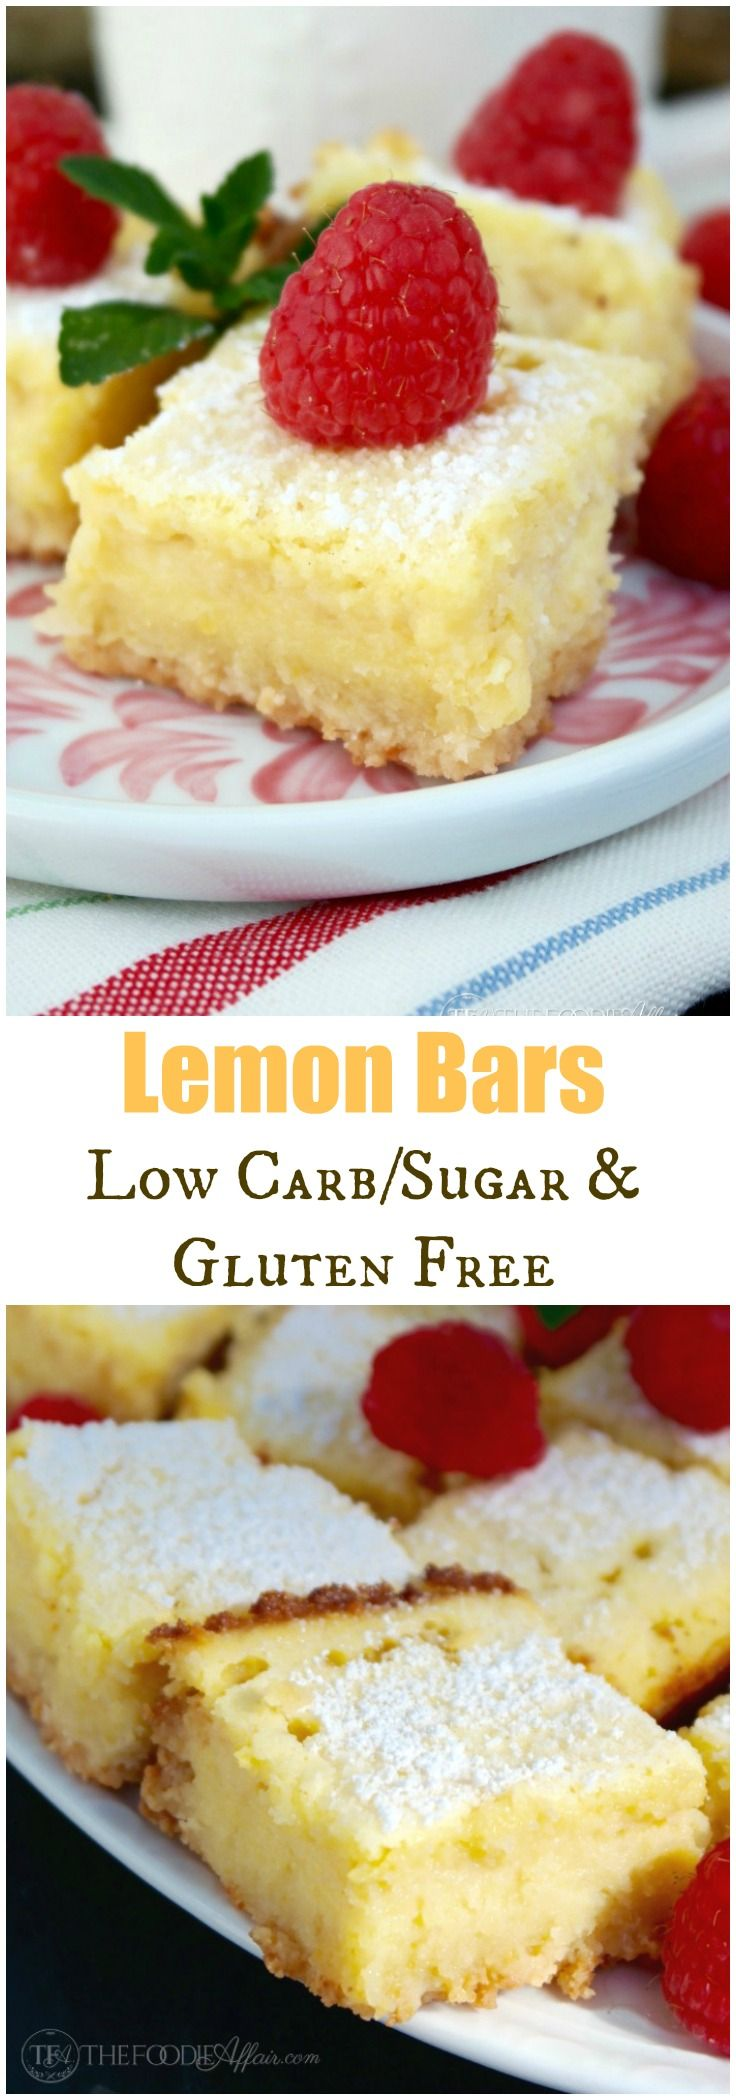 Keto Lemon Bars that are low carb and gluten free! These delicious bars have all the flavor of an ordinary bar, but can be enjoyed by those watching their carb and sugar intake. Keto friendly too! The Foodie Affair